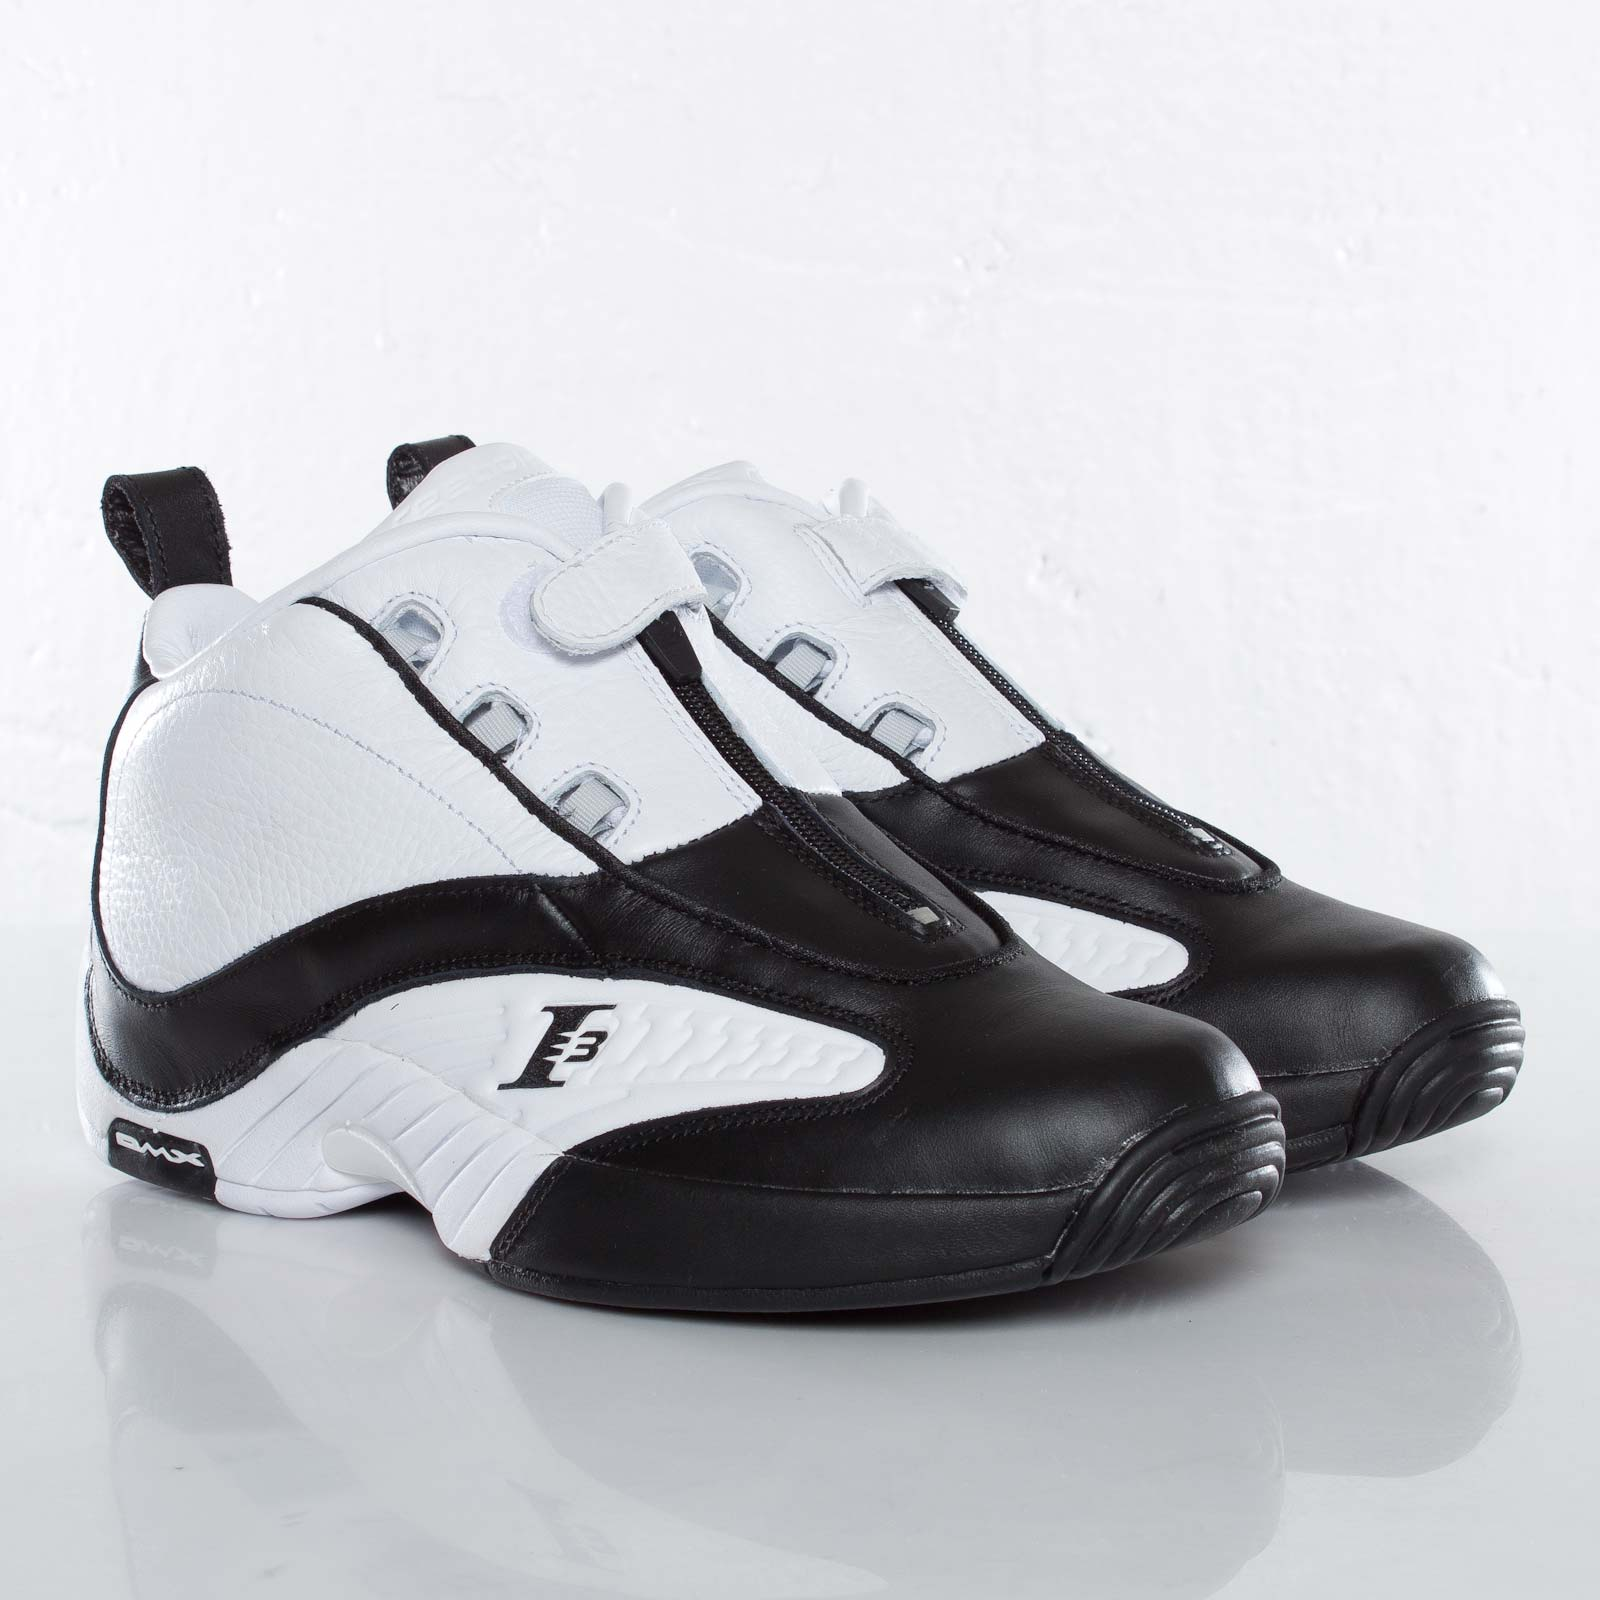 a44224719ba9 Reebok Answer IV - 151569 - Sneakersnstuff